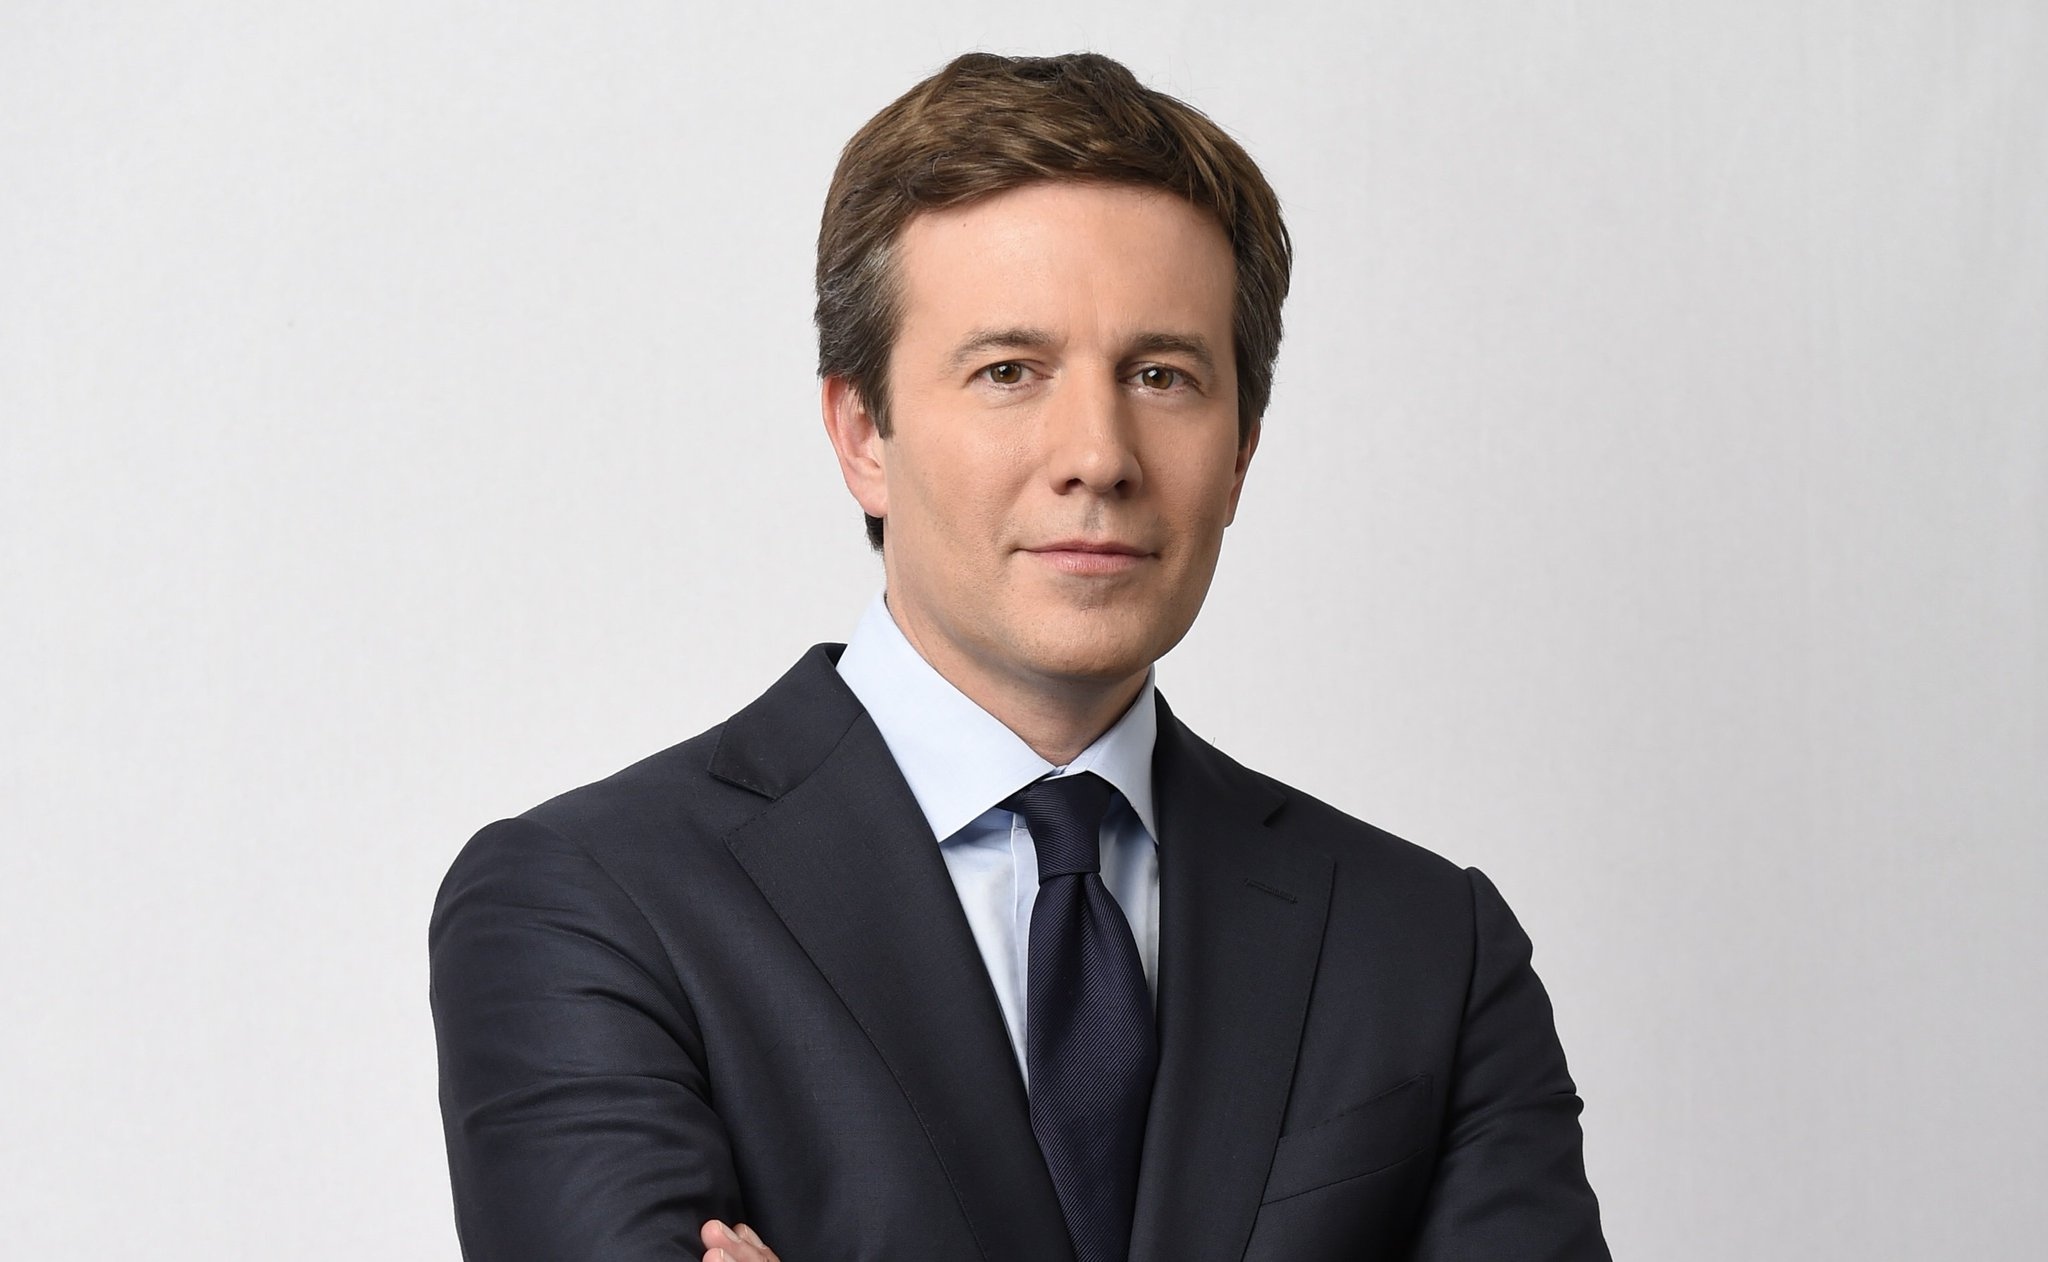 .@CBSNews names @jeffglor anchor of the @CBSEveningNews. MORE: https://t.co/kWQKKXznKR https://t.co/TjJyIrz2o3